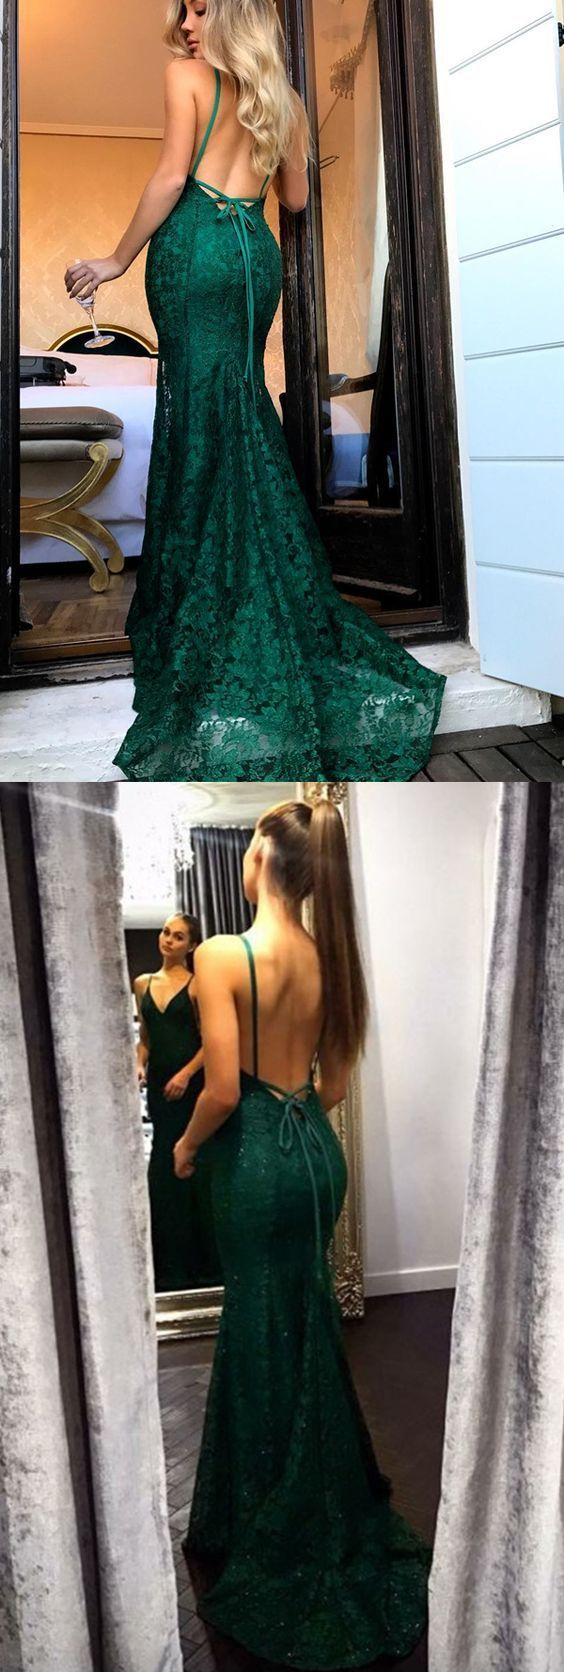 F0176 Sexy Backless Mermaid Evening Dress, Fashionable Spaghetti Straps Lace Long Prom Dress